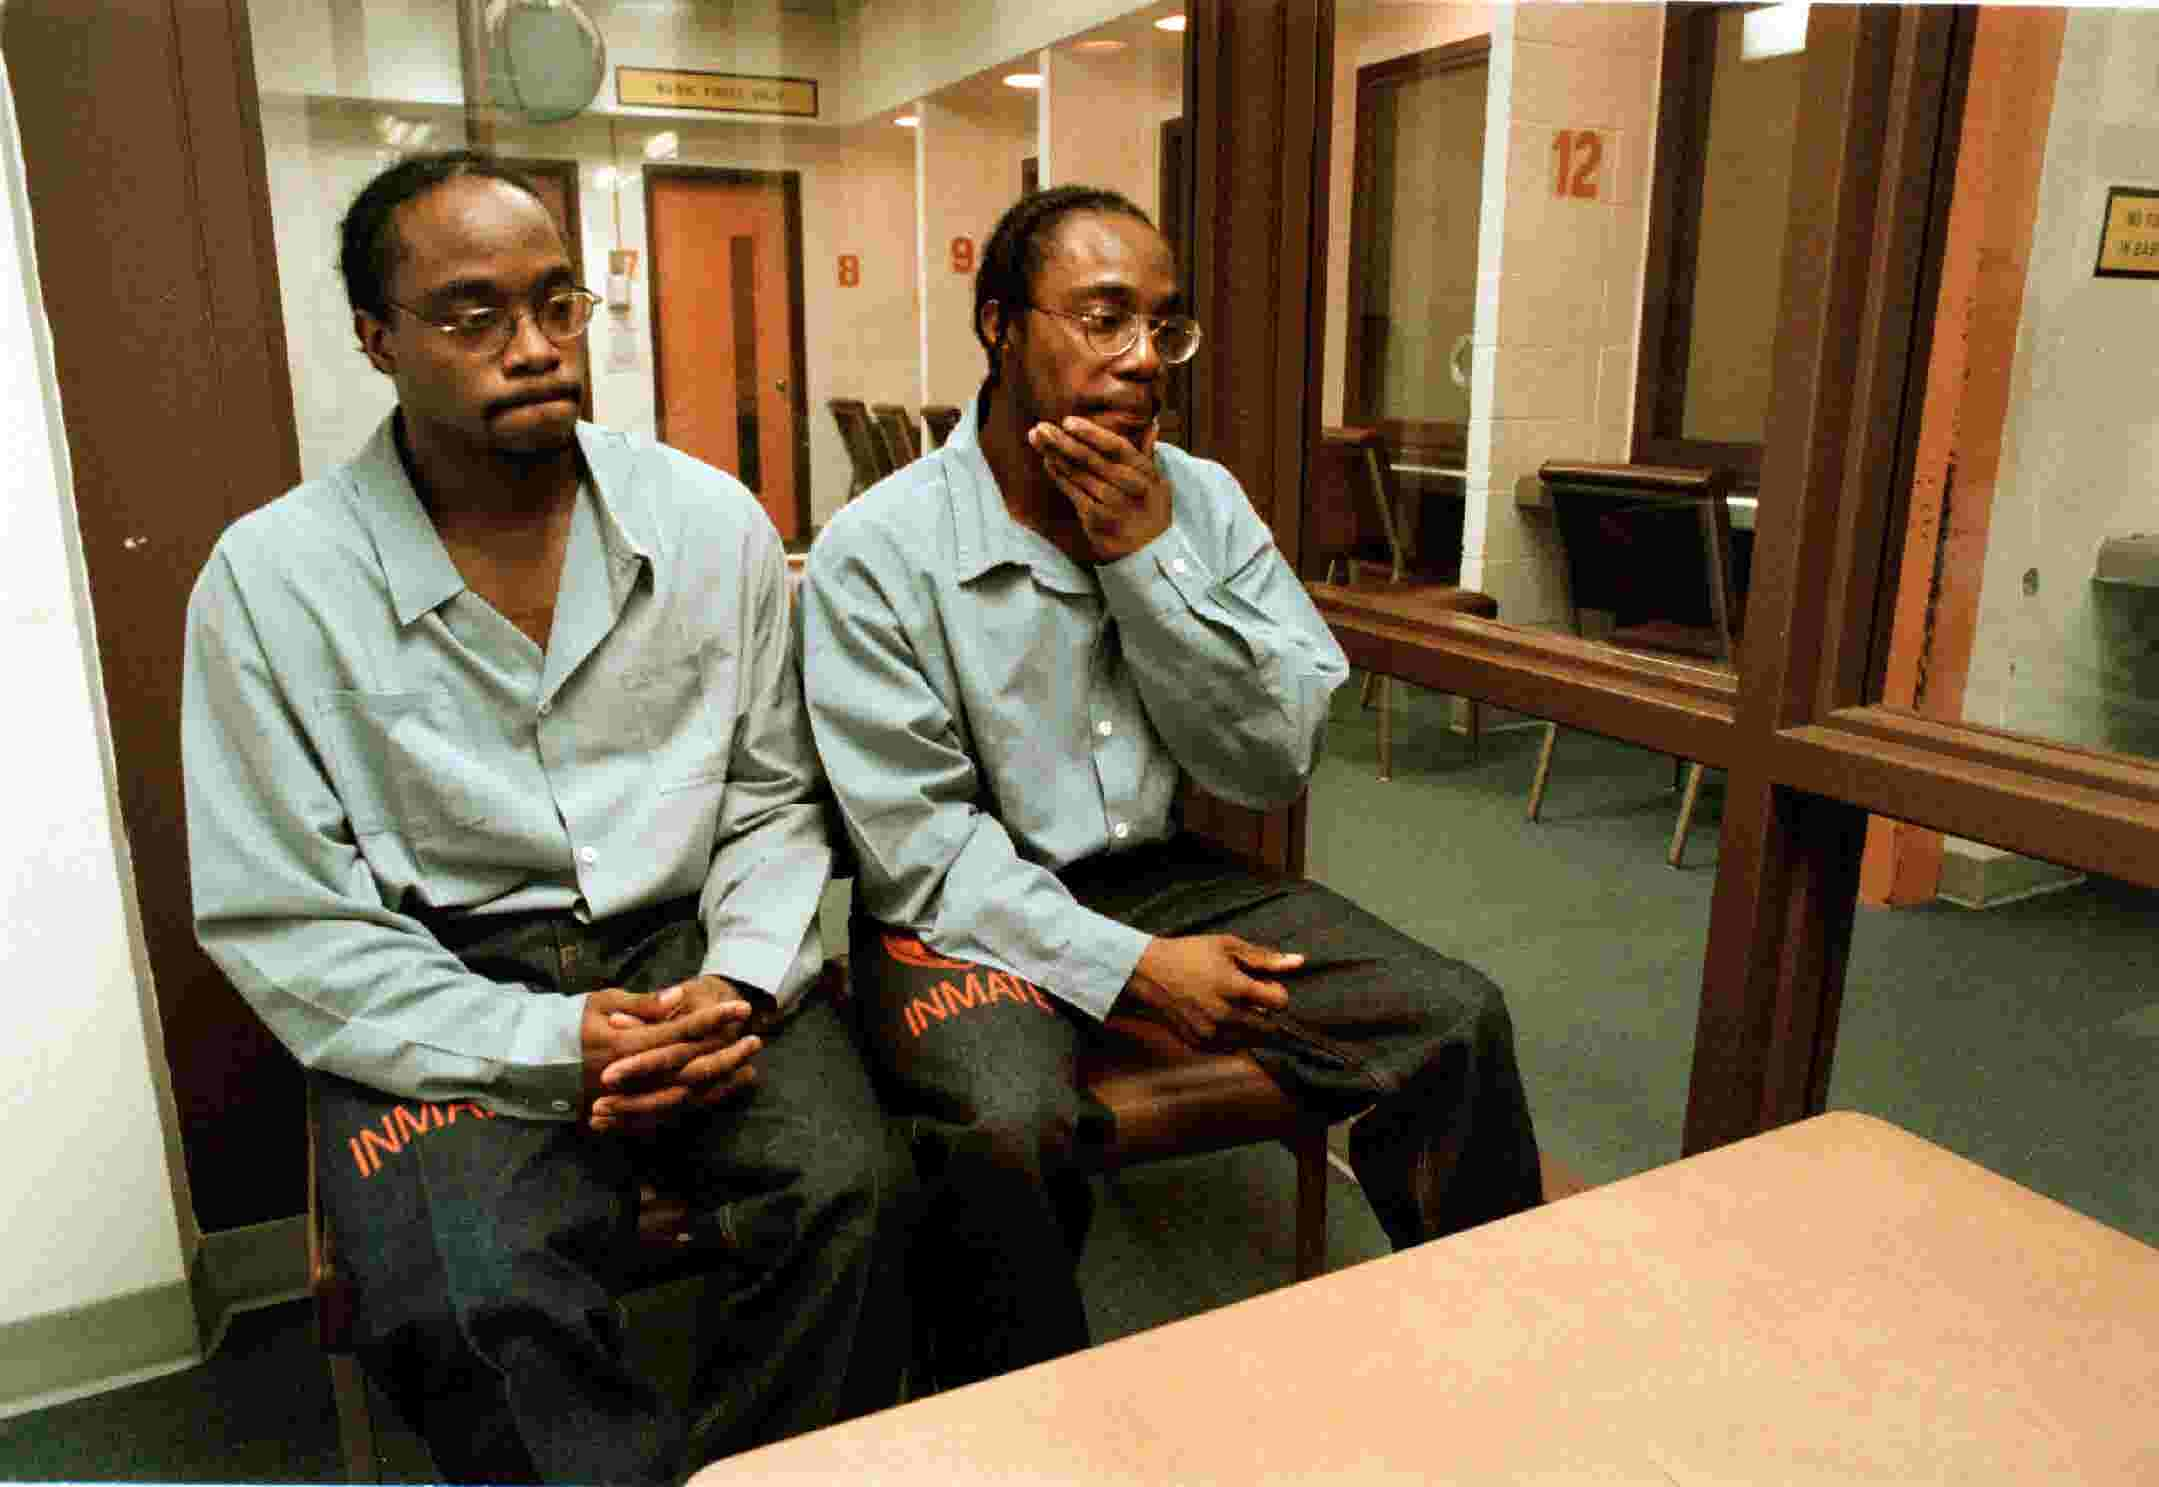 Salem twins' 'life' sentences in limbo, could go to U.S. Supreme Court